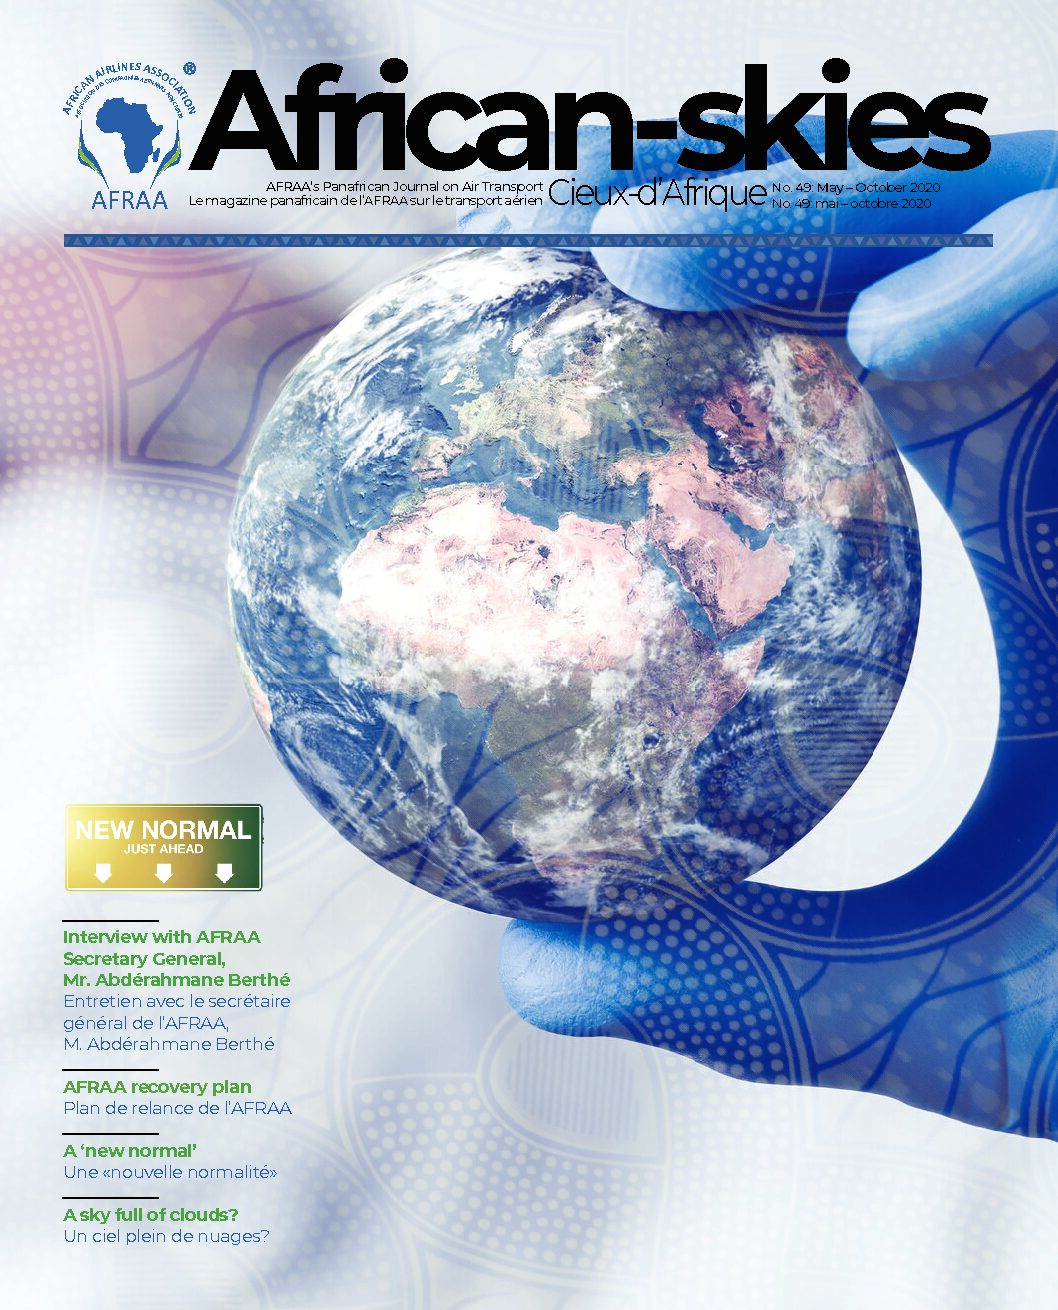 African Skies Issue no. 49